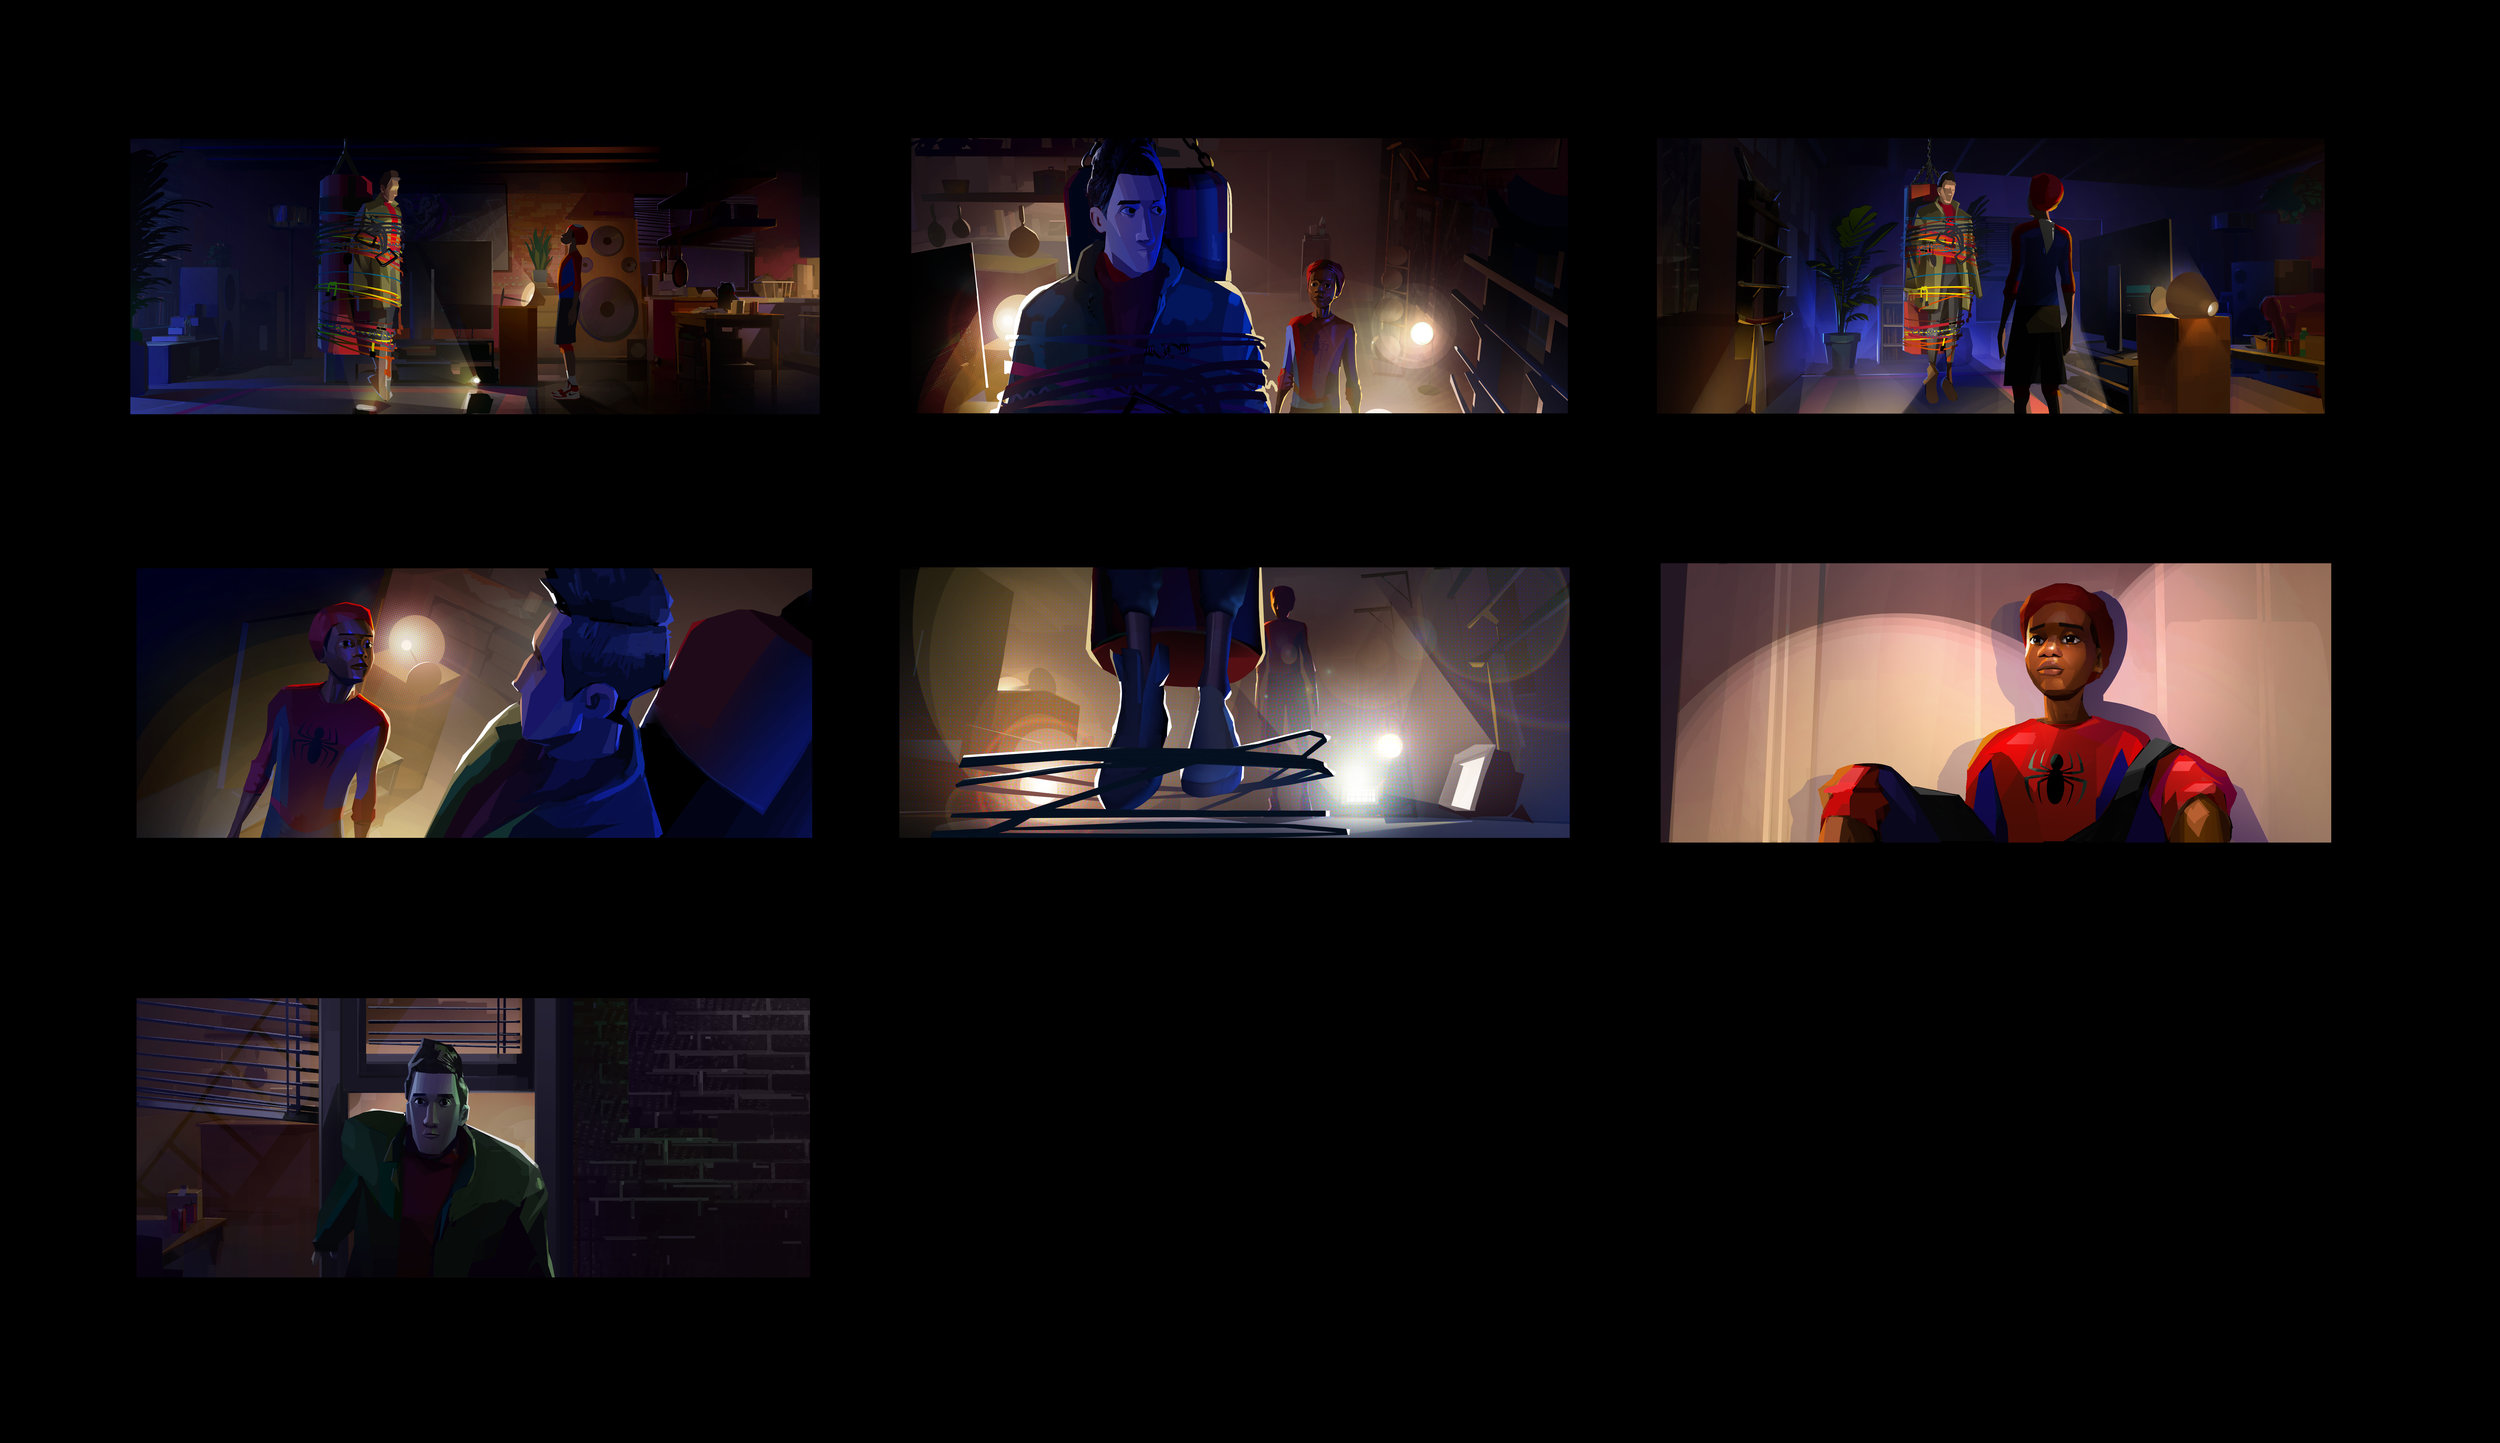 021_GAB_contact_sheet_wd.jpg